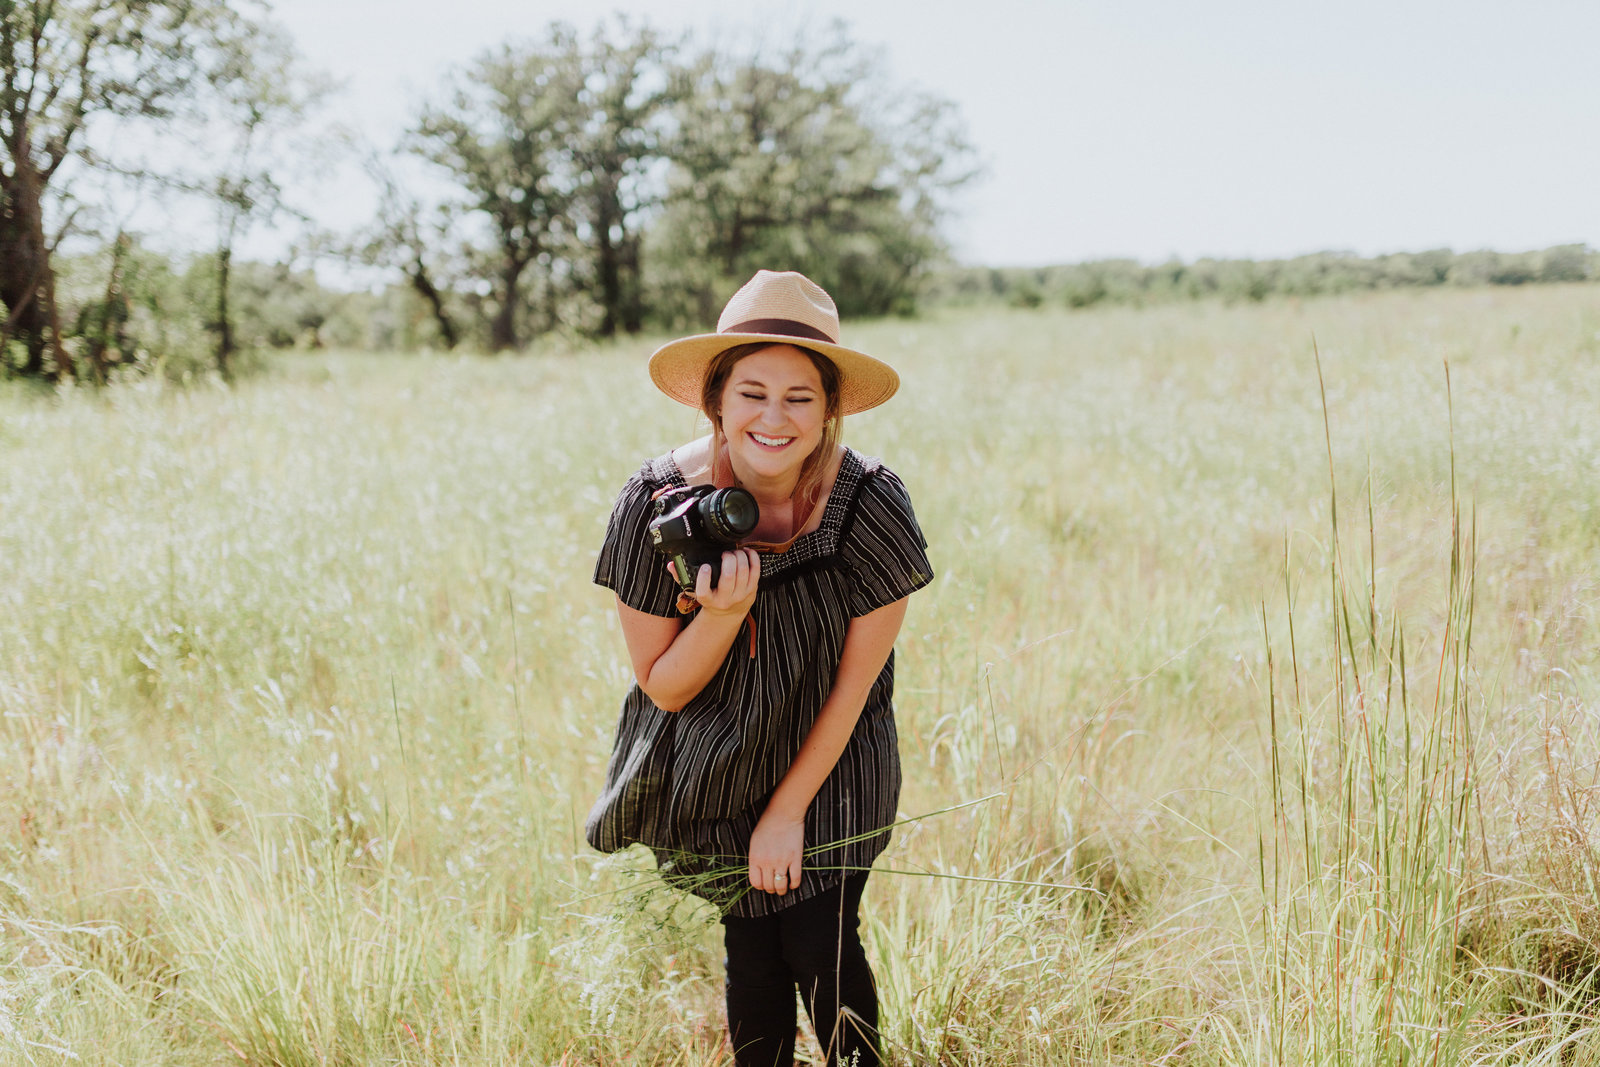 Girl laughing in field holding Canon camera